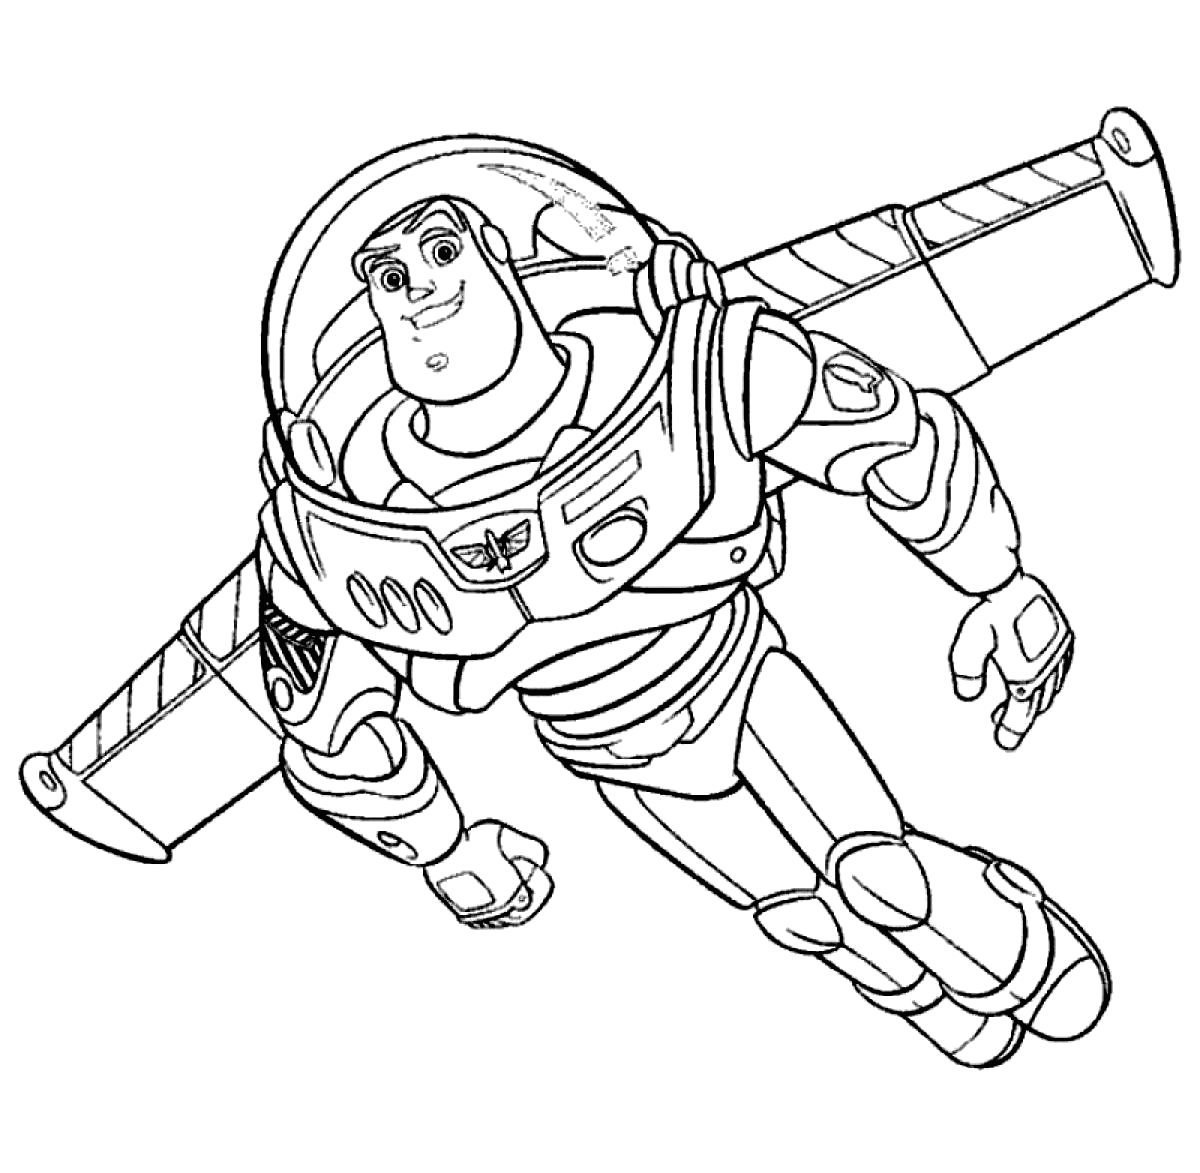 Buzz Lightyear Coloring Pages Free to Print Free Printable Buzz Lightyear Coloring Pages for Kids